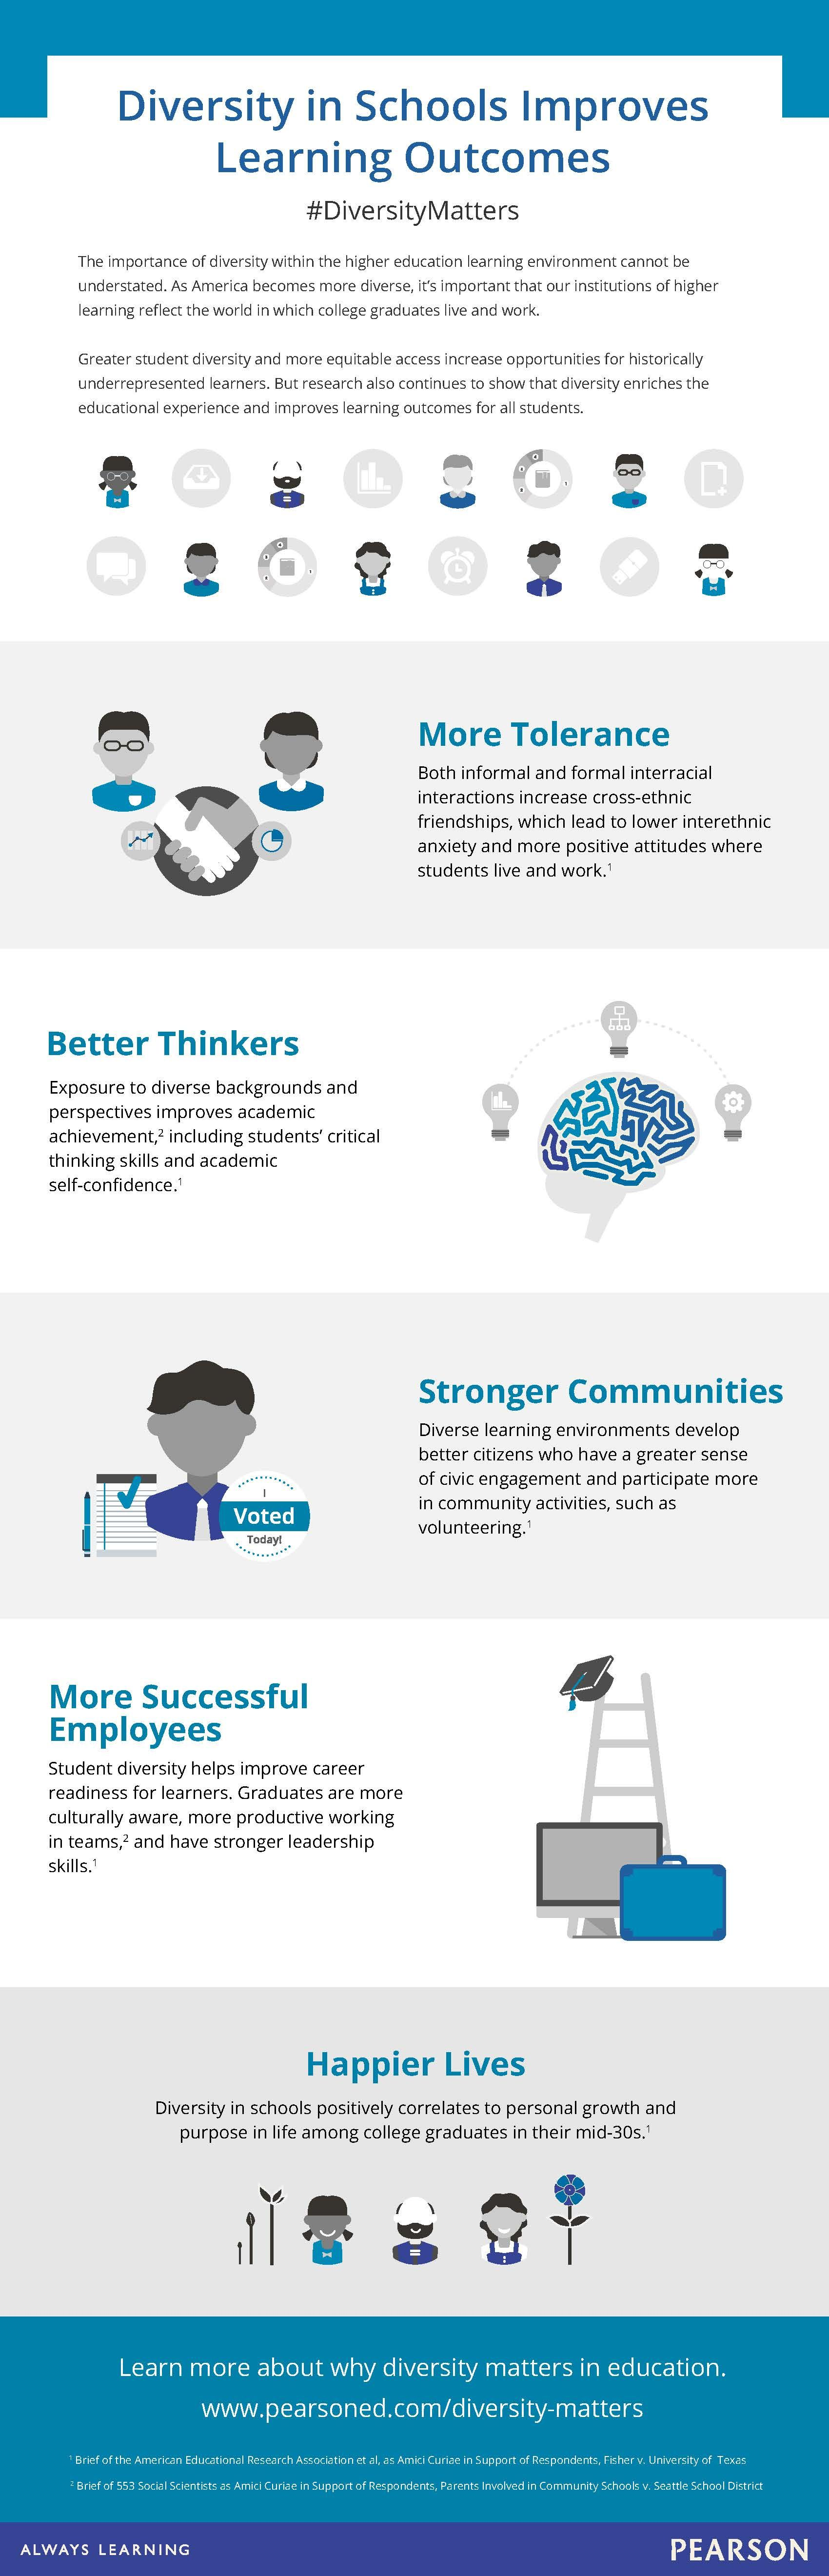 diversity in schools improves learning infographic  education  the importance of diversity within the higher education learning  environment cannot be understated as america becomes more diverse its  important that our